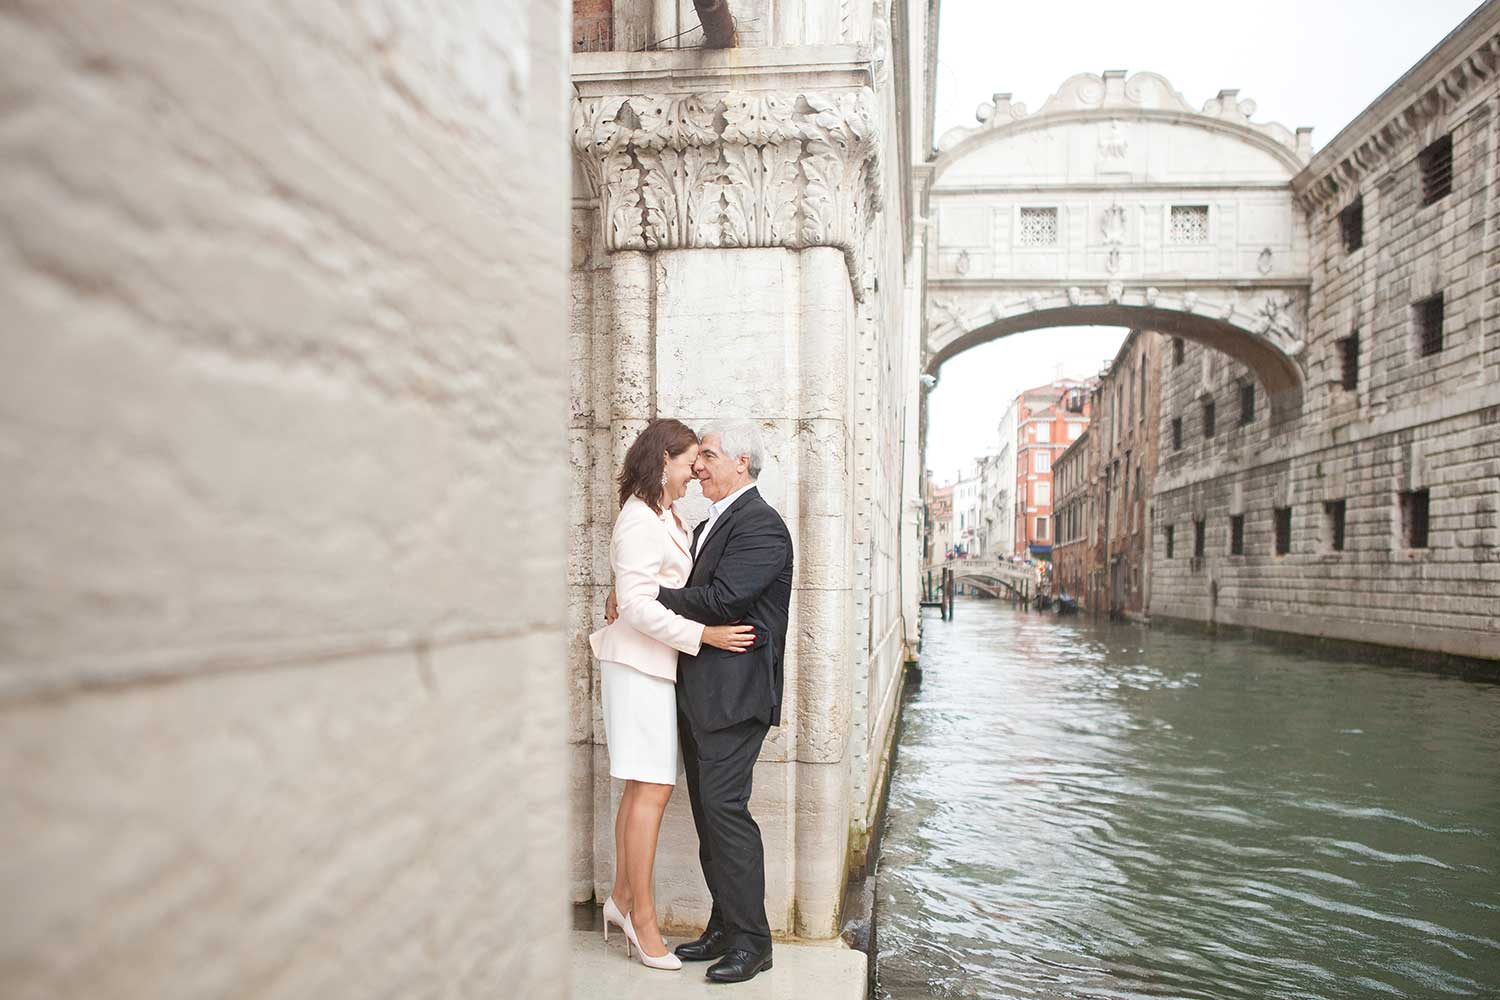 A kiss with the bridge